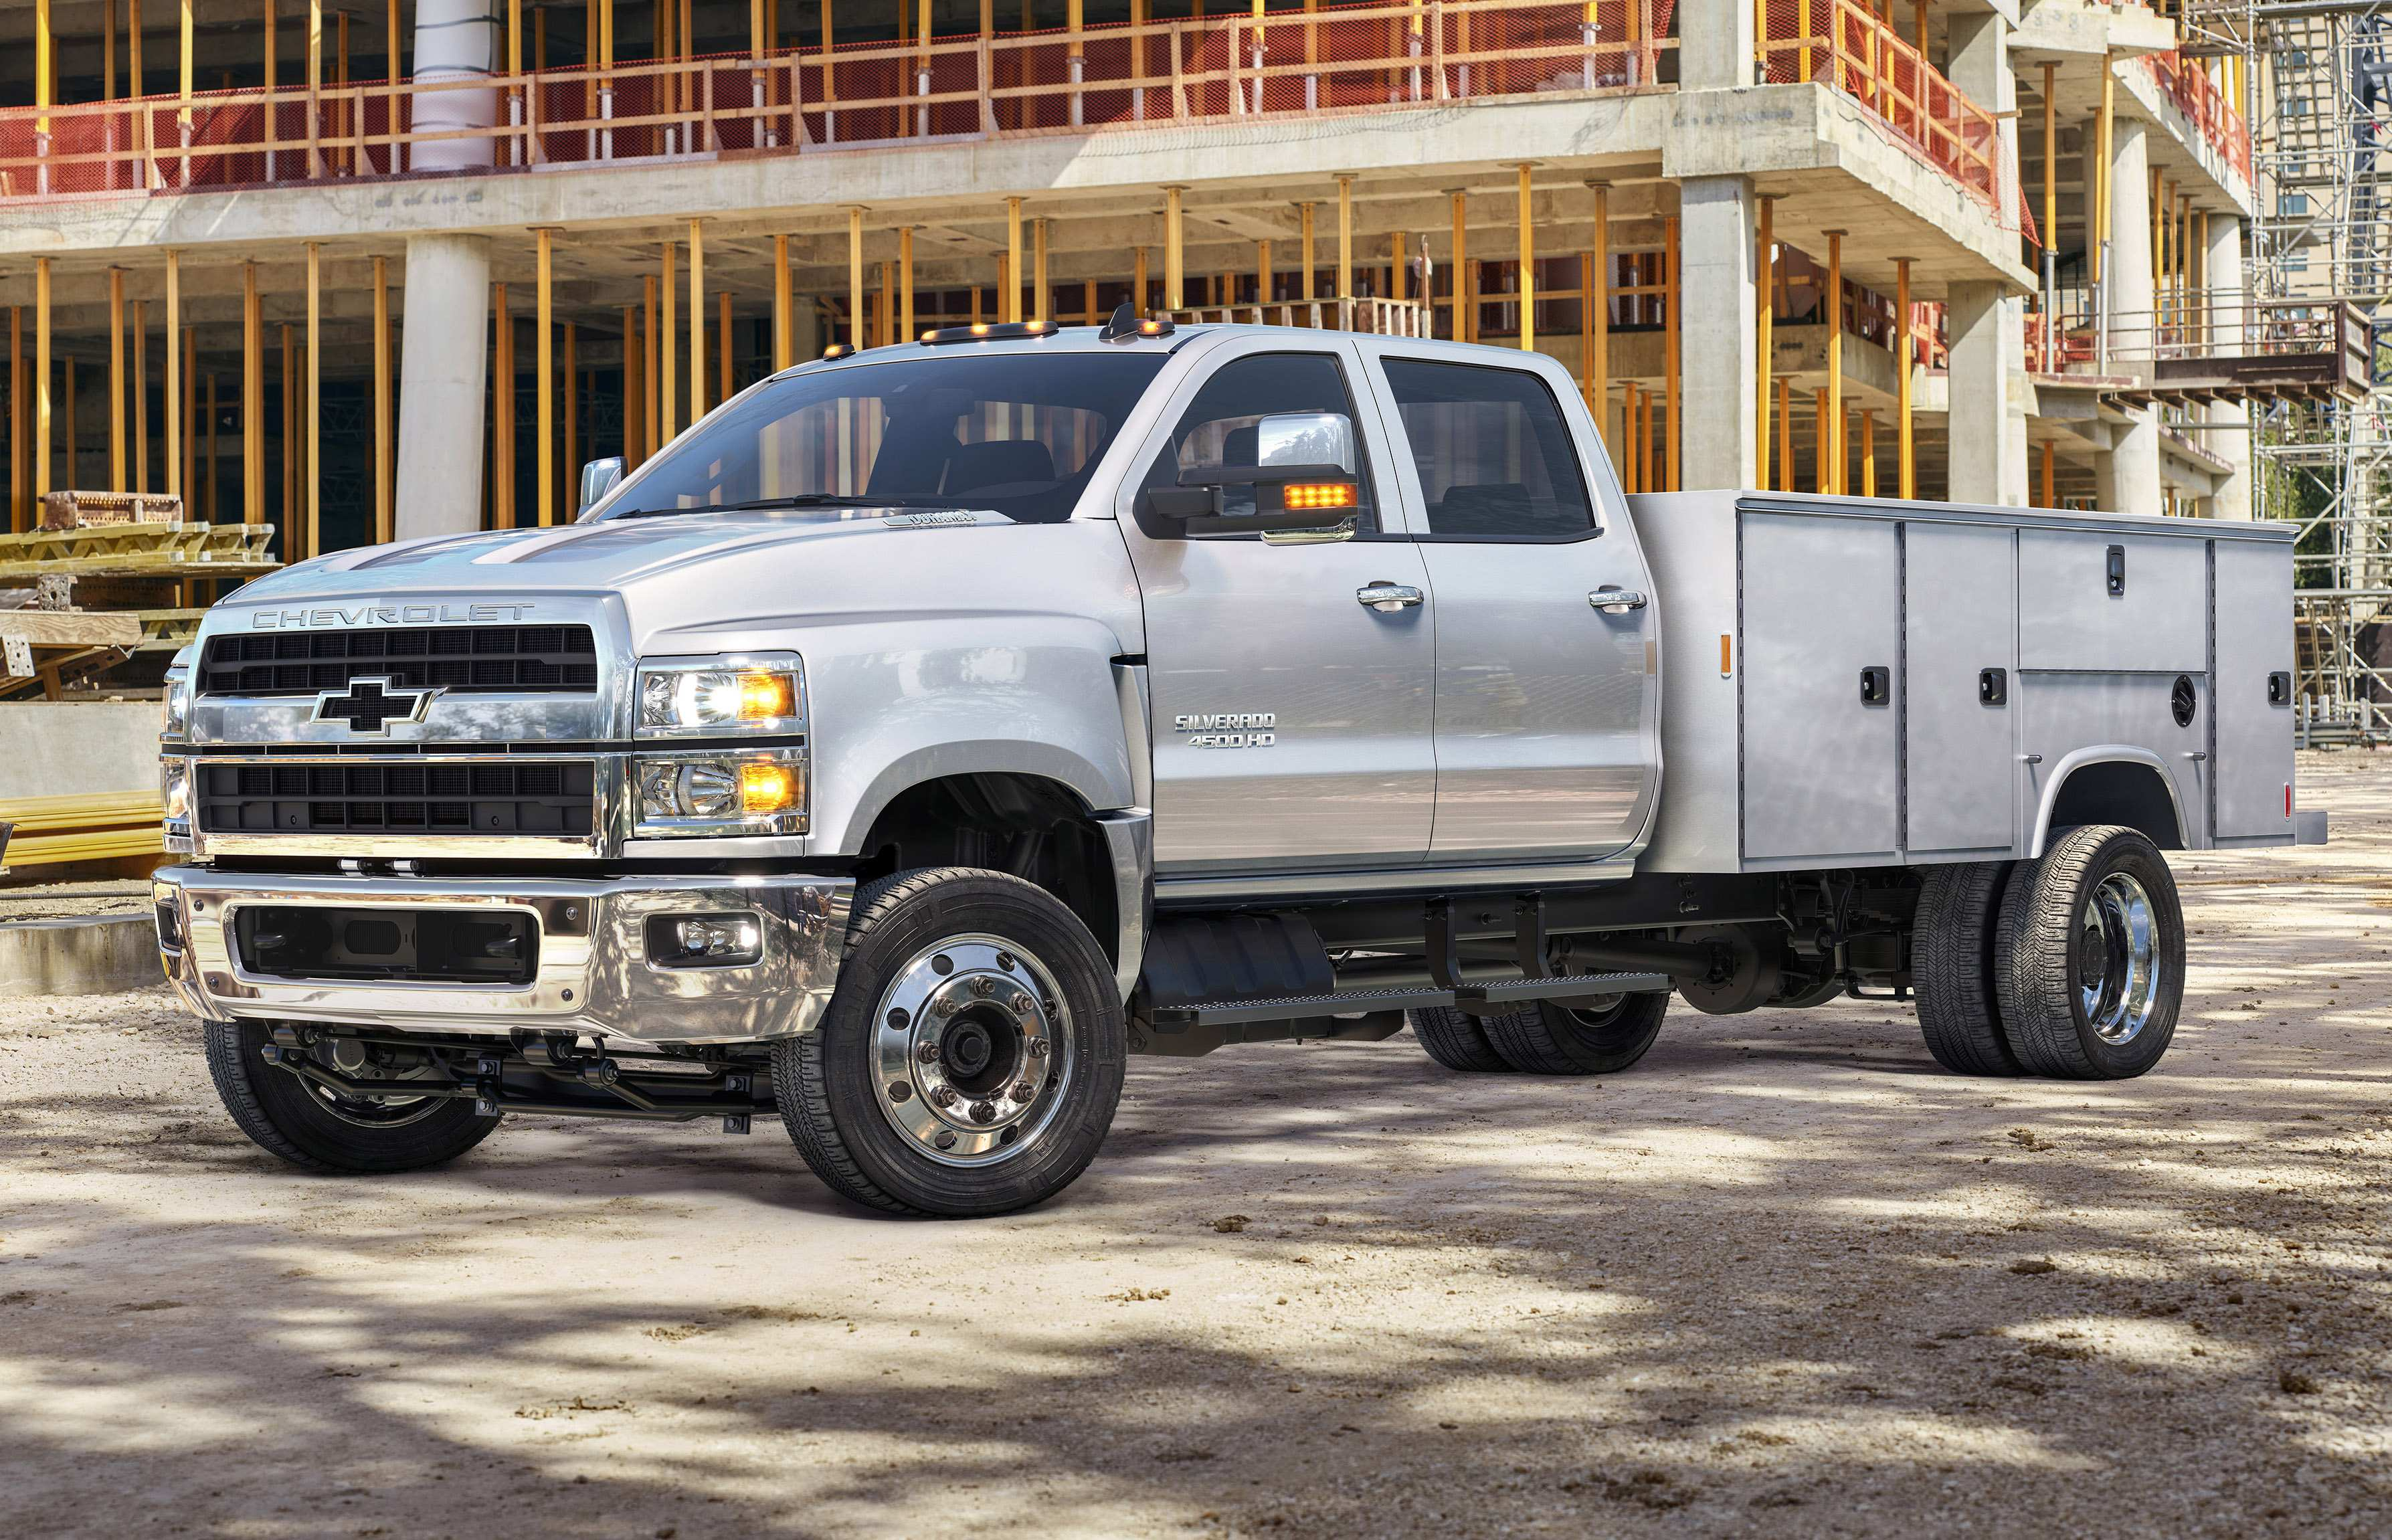 94 All New Chevrolet Lineup 2020 Exterior and Interior by Chevrolet Lineup 2020